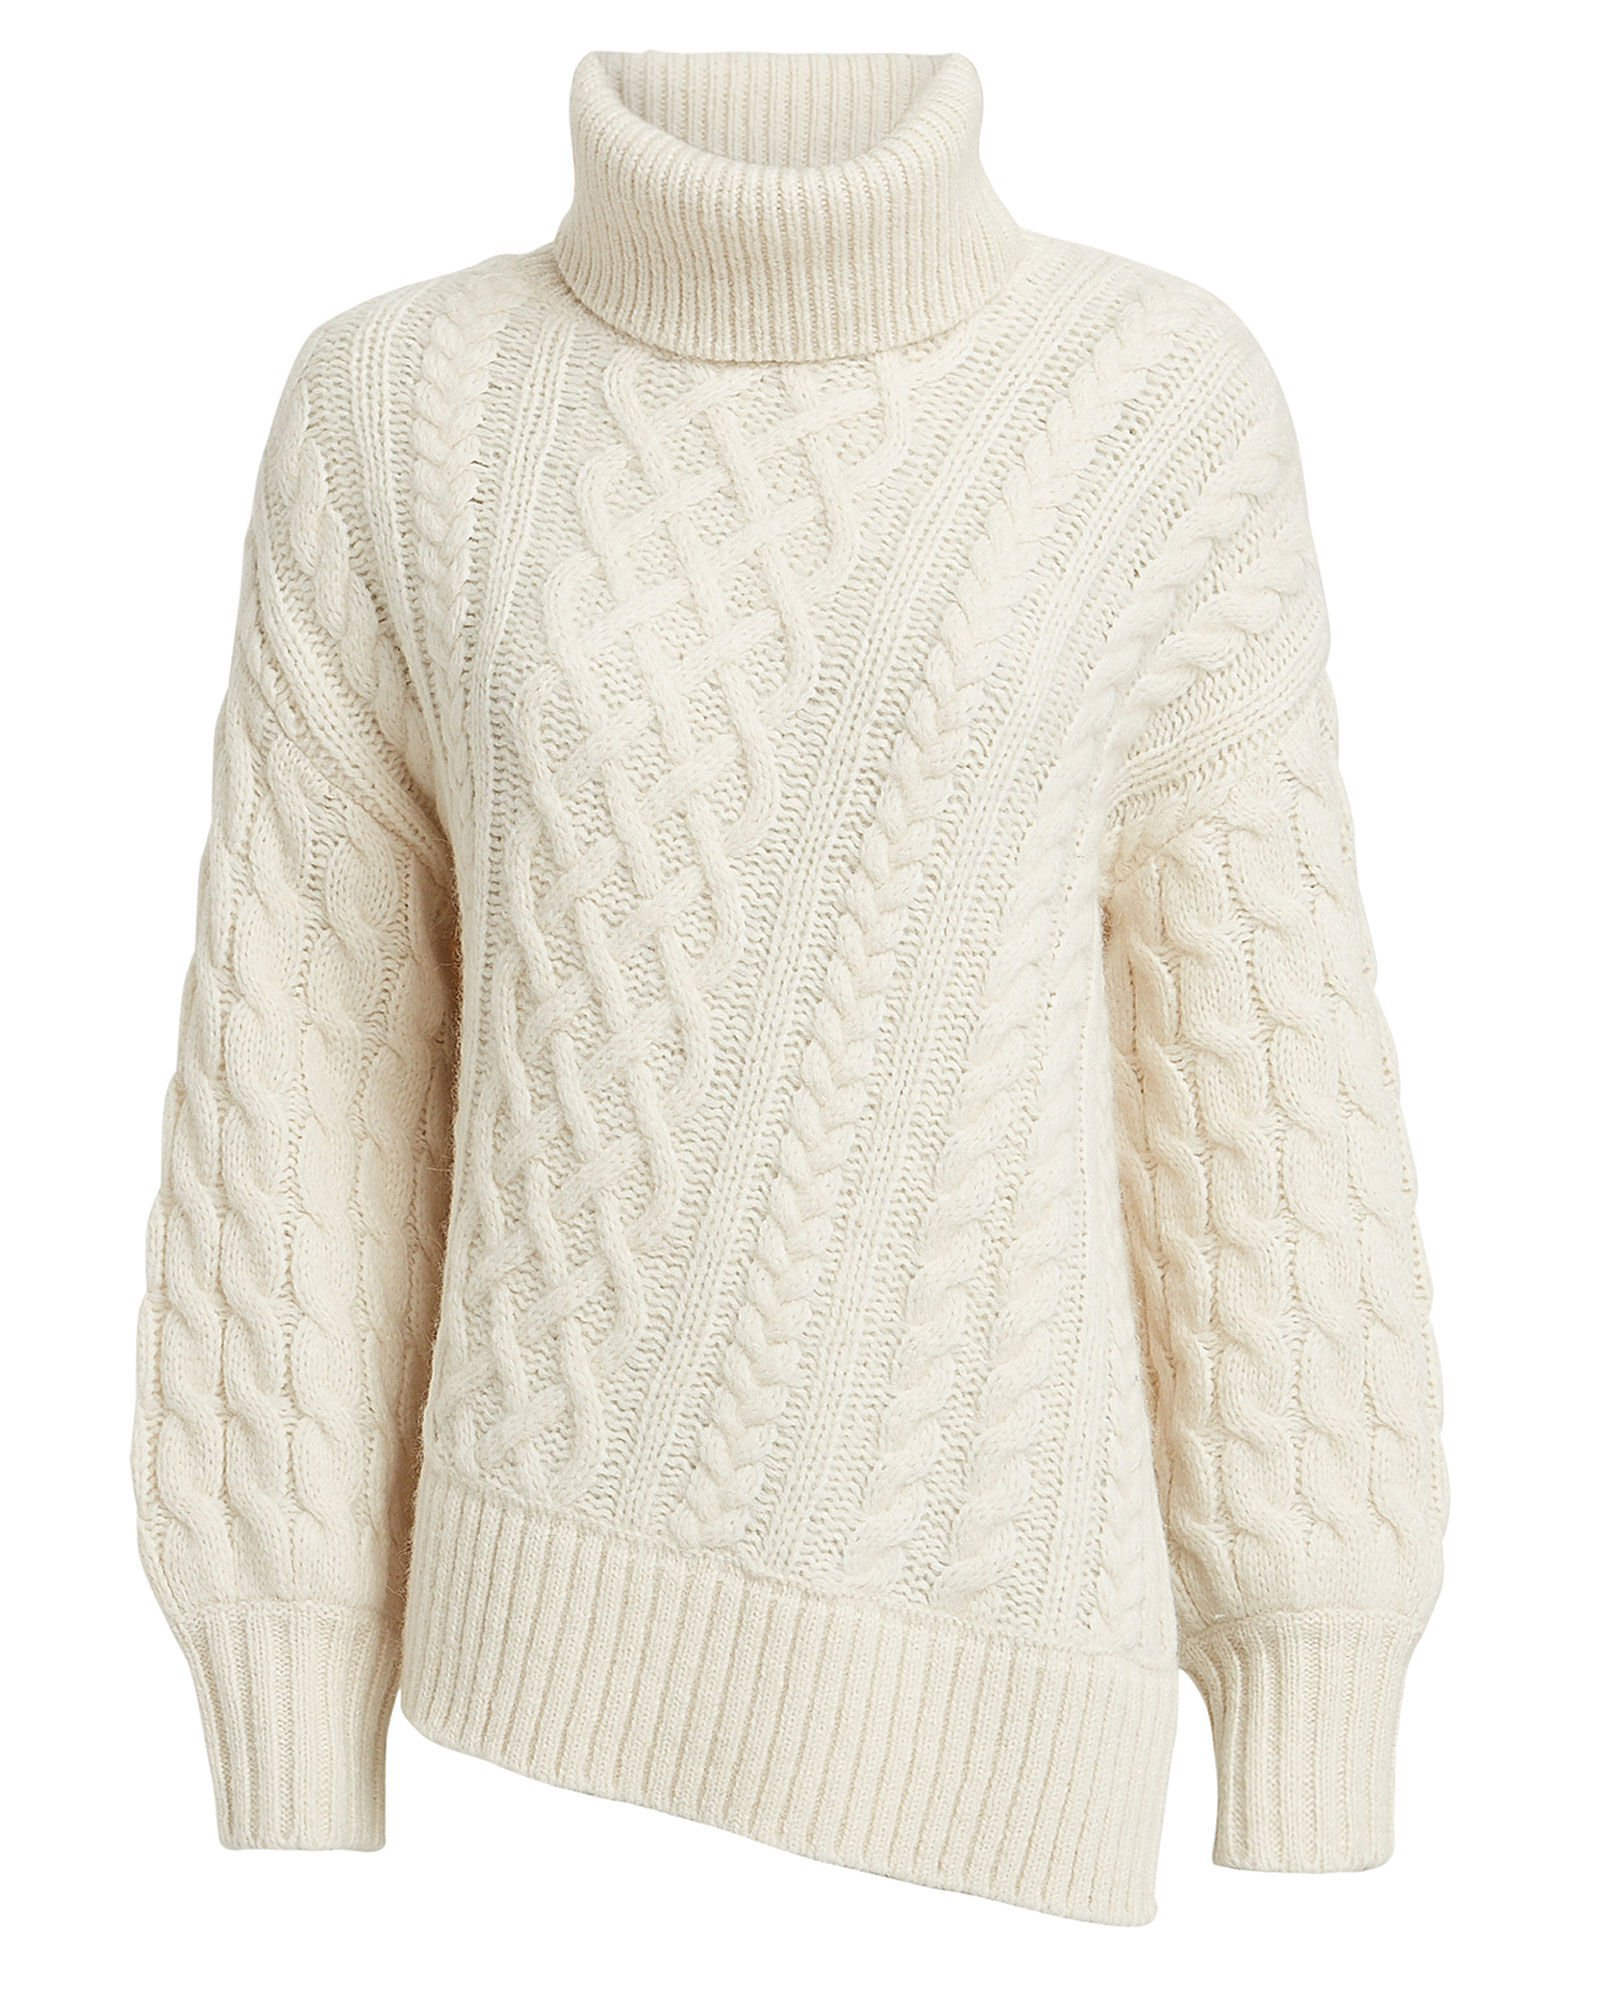 A.L.C. | Nevelson Cable Knit Turtleneck | INTERMIX®